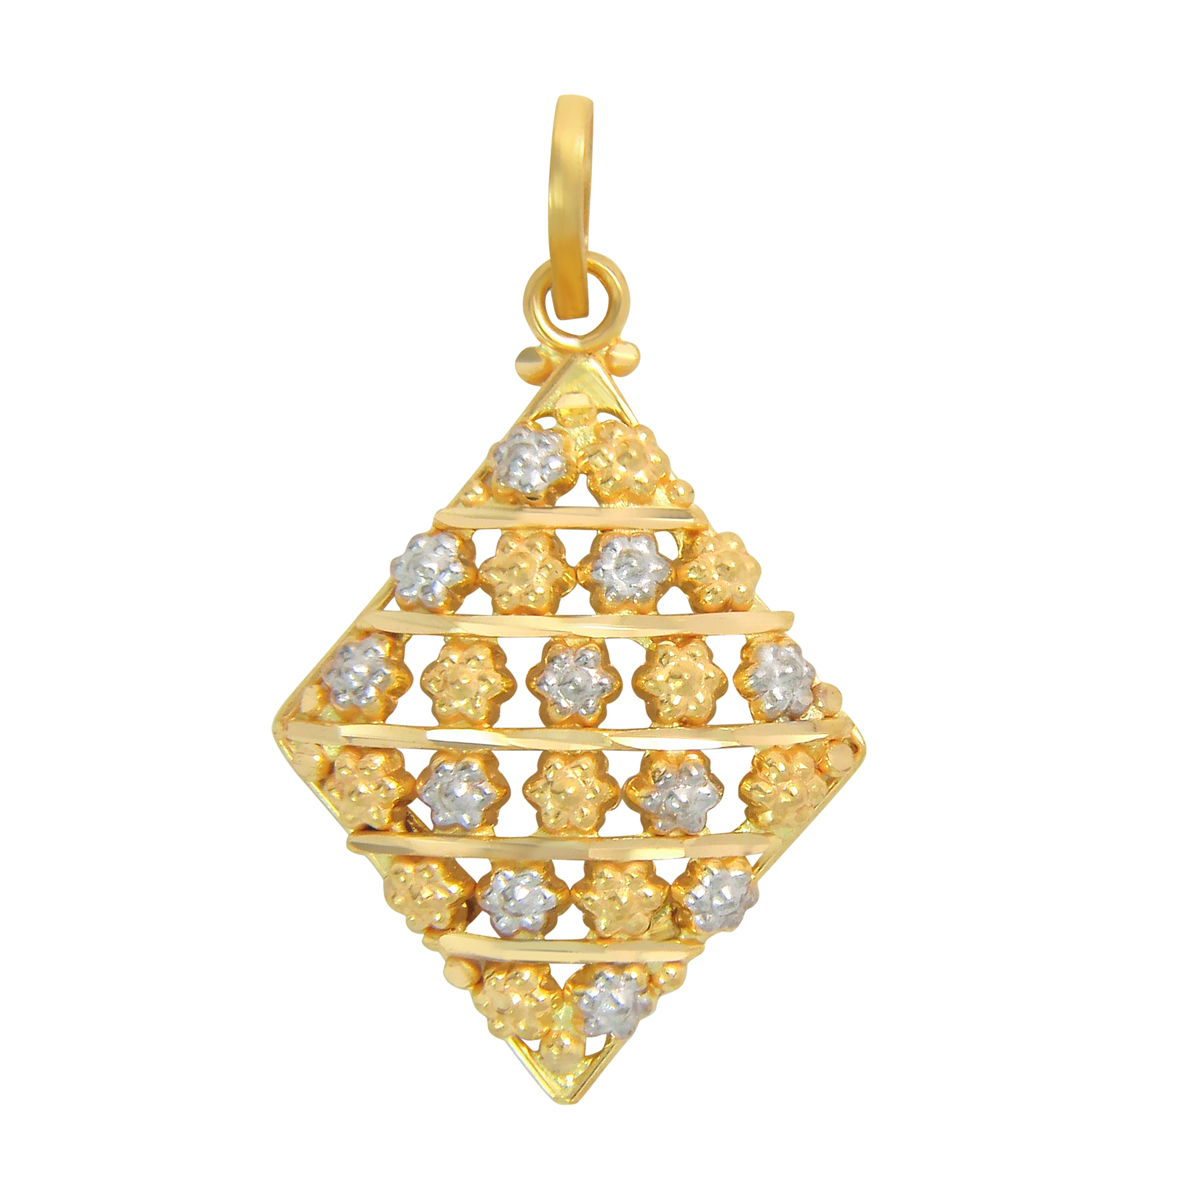 Popley 22Kt Gold Bandhan Pendant - A14